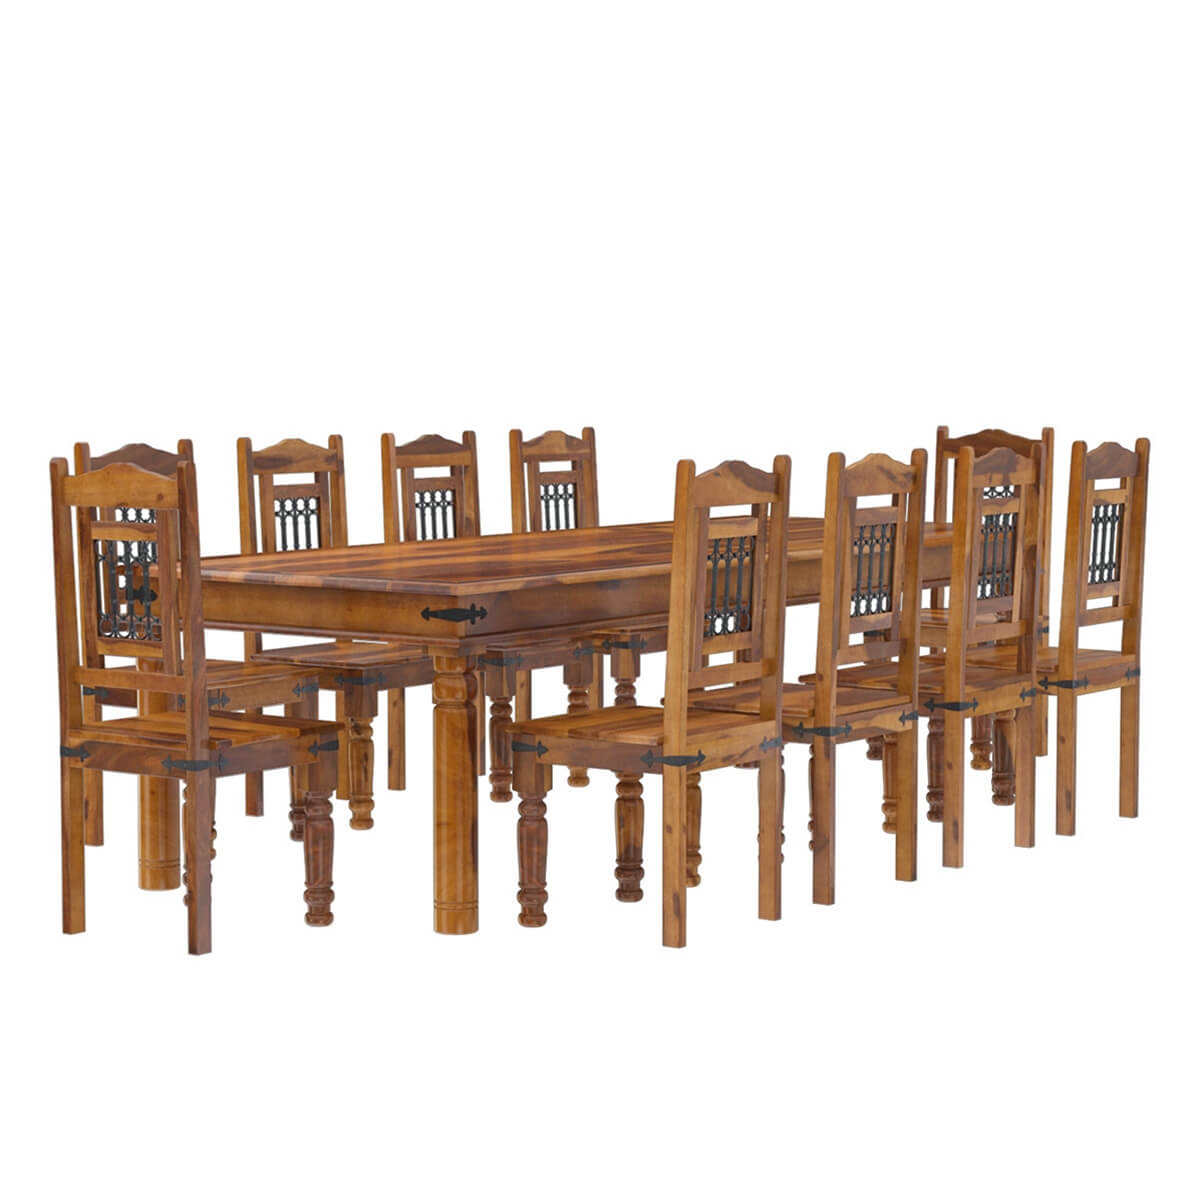 10 Seat Dining Table Set San Francisco Rustic Furniture Large Dining Table With 10 Chairs Set